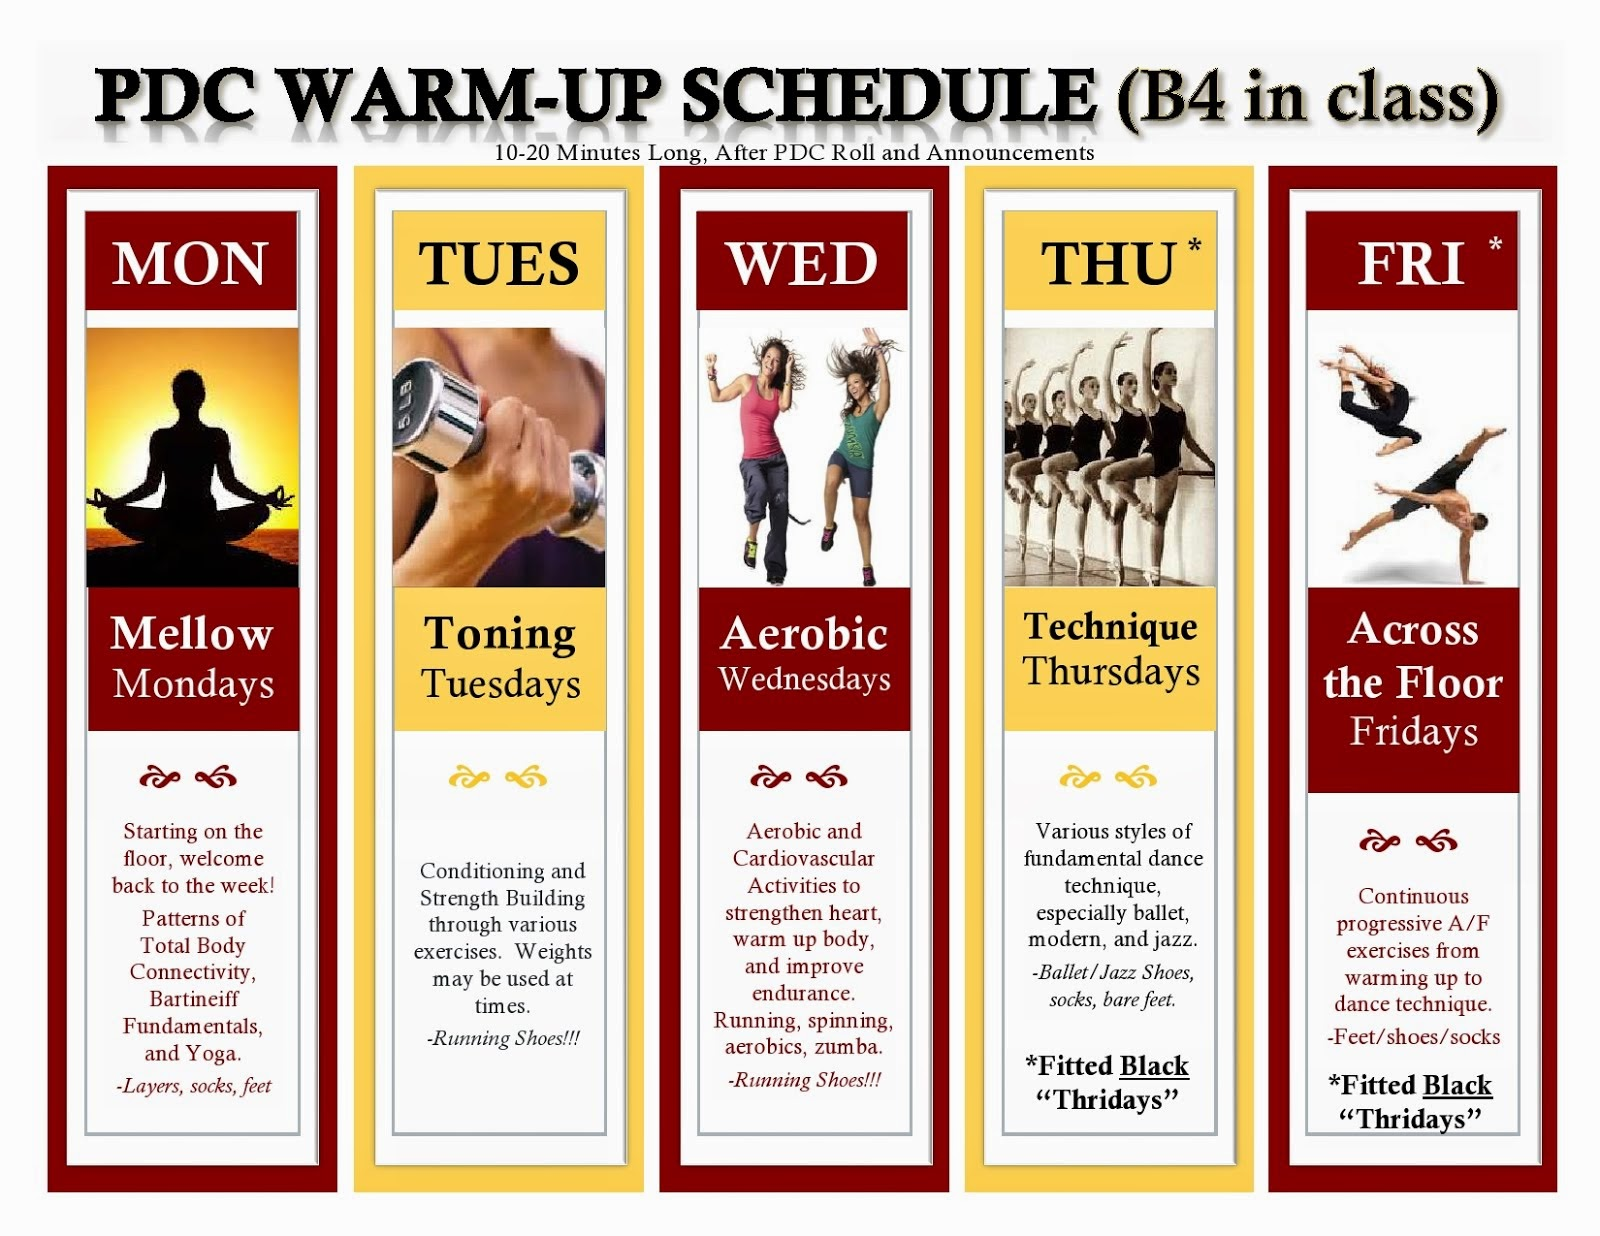 PDC Warm-Up Schedule